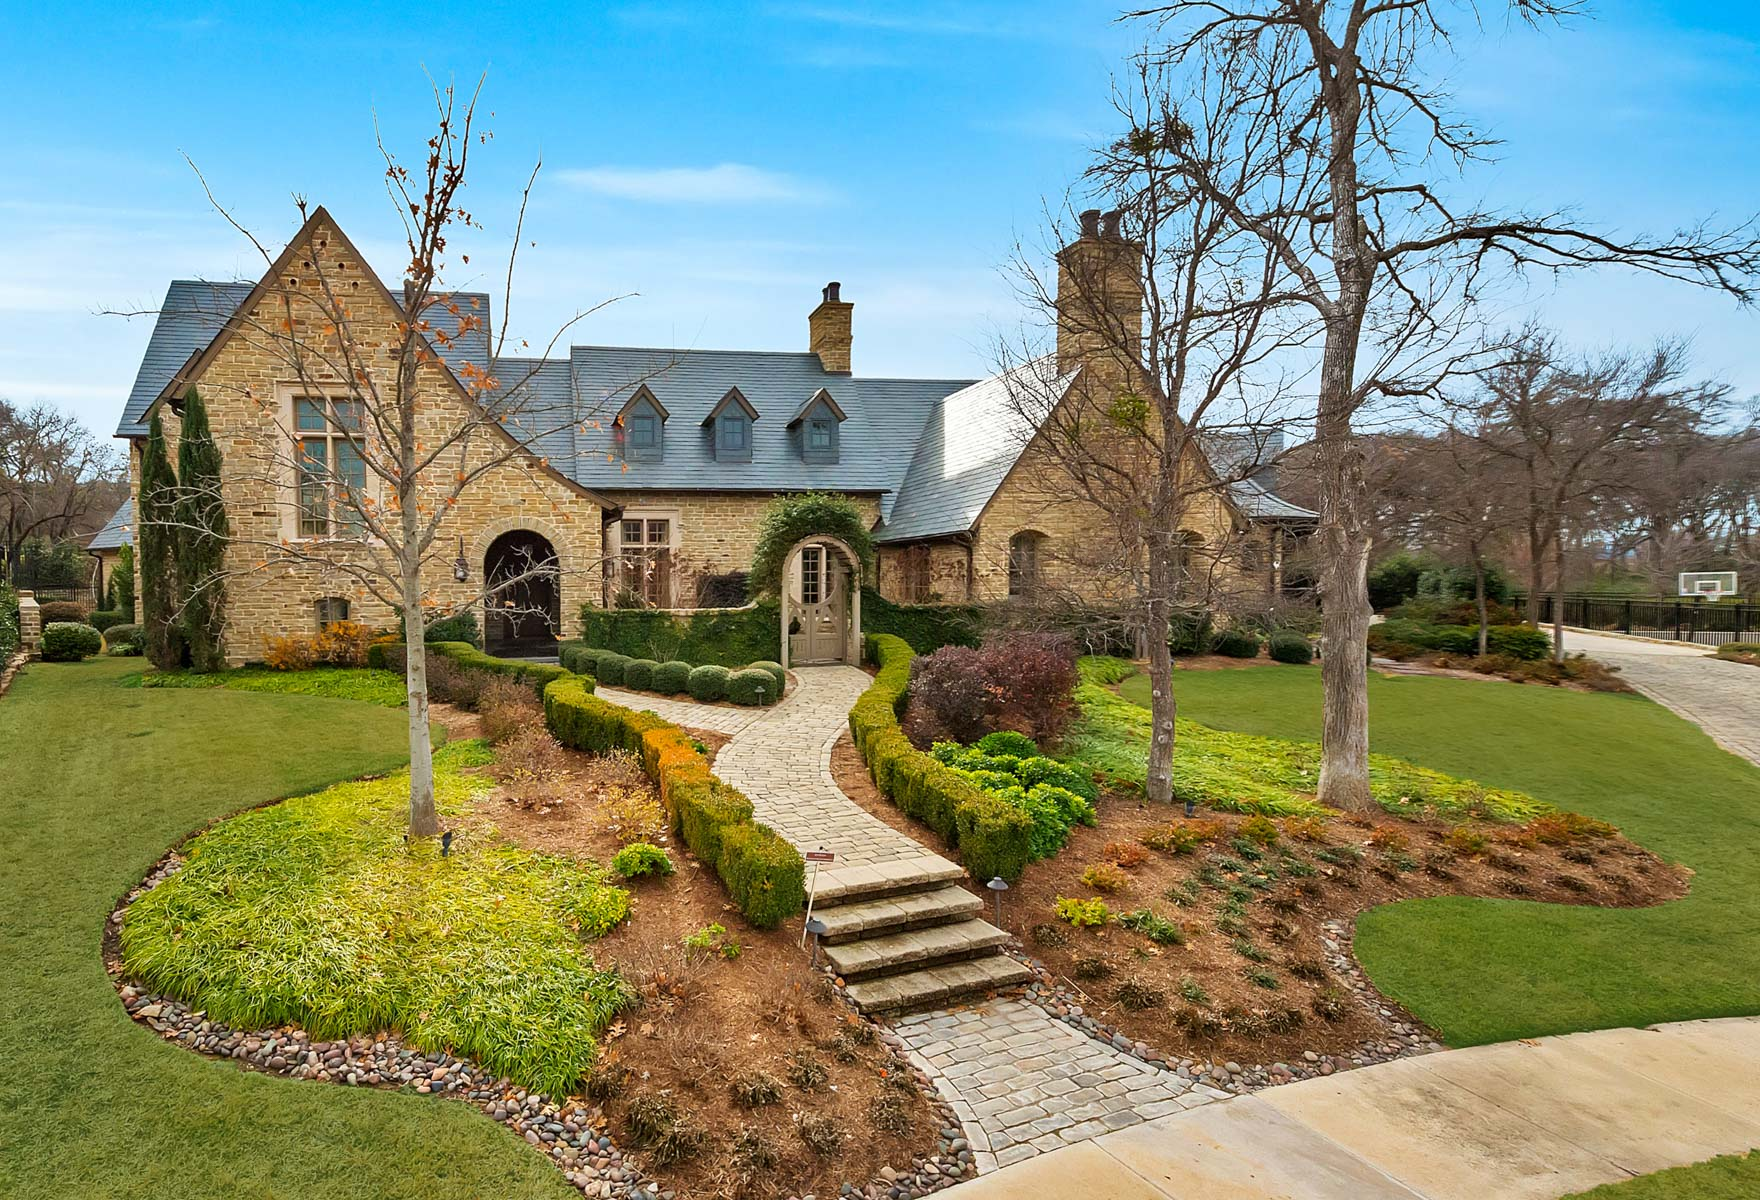 Maison unifamiliale pour l Vente à Stunning Two-Story English Cotswold Manor 3640 Middlewood Drive Fort Worth, Texas, 76109 États-Unis